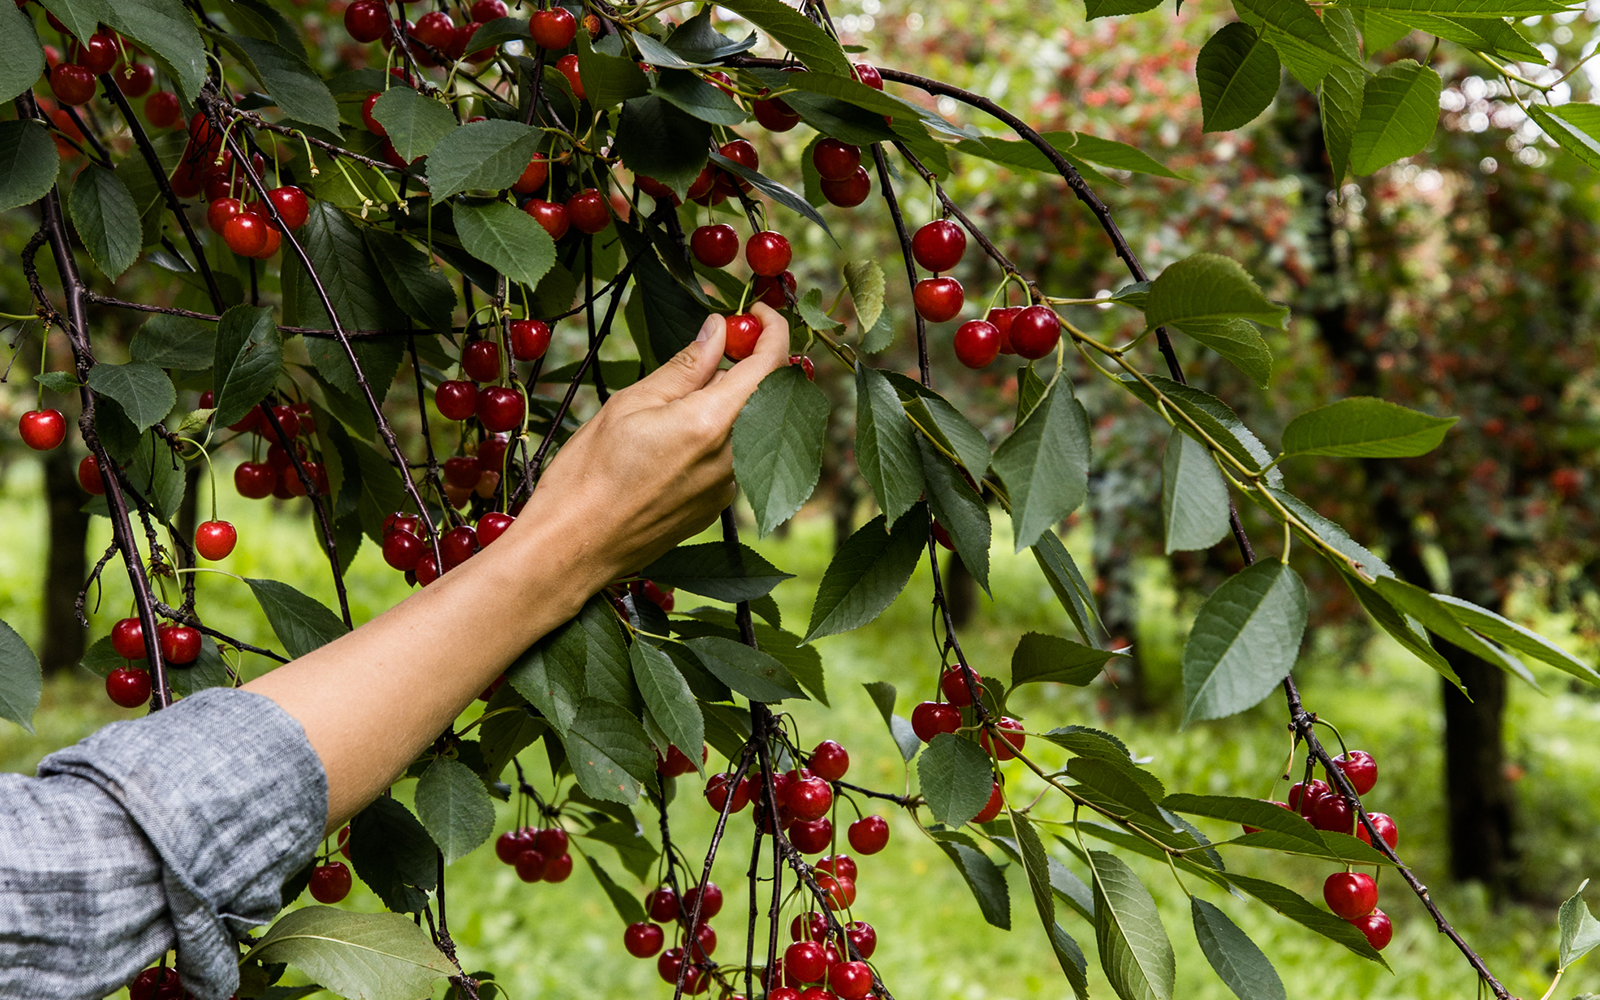 Touring a Tart Cherry Orchard in Northern Michigan with Montmorency Tart Cherries.